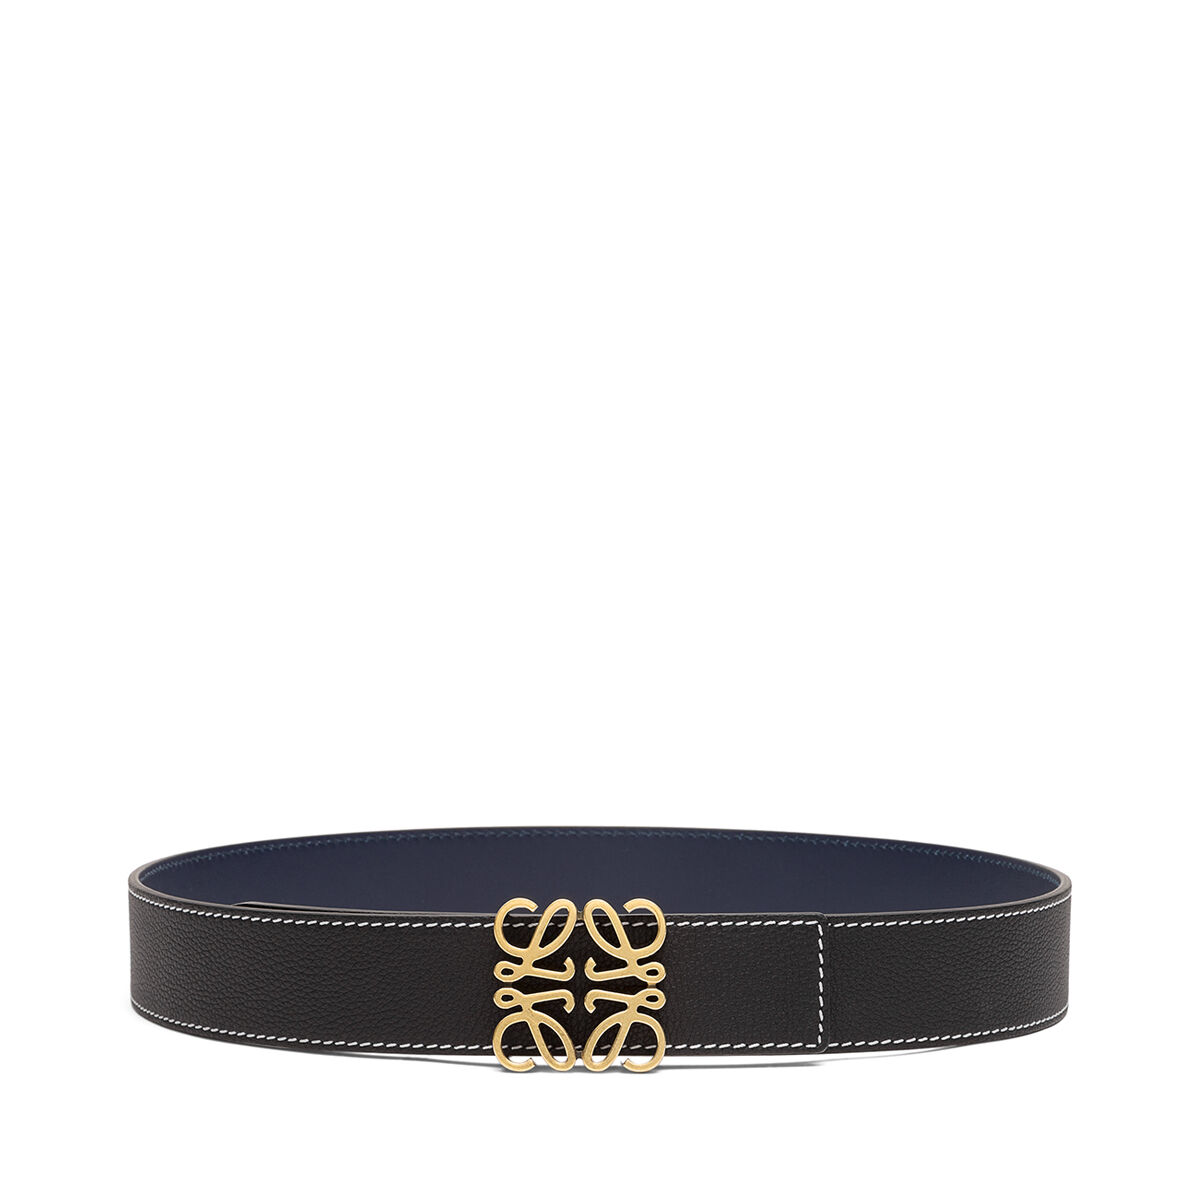 LOEWE アナグラム ベルト 4 CM Black/Navy/Old Gold all